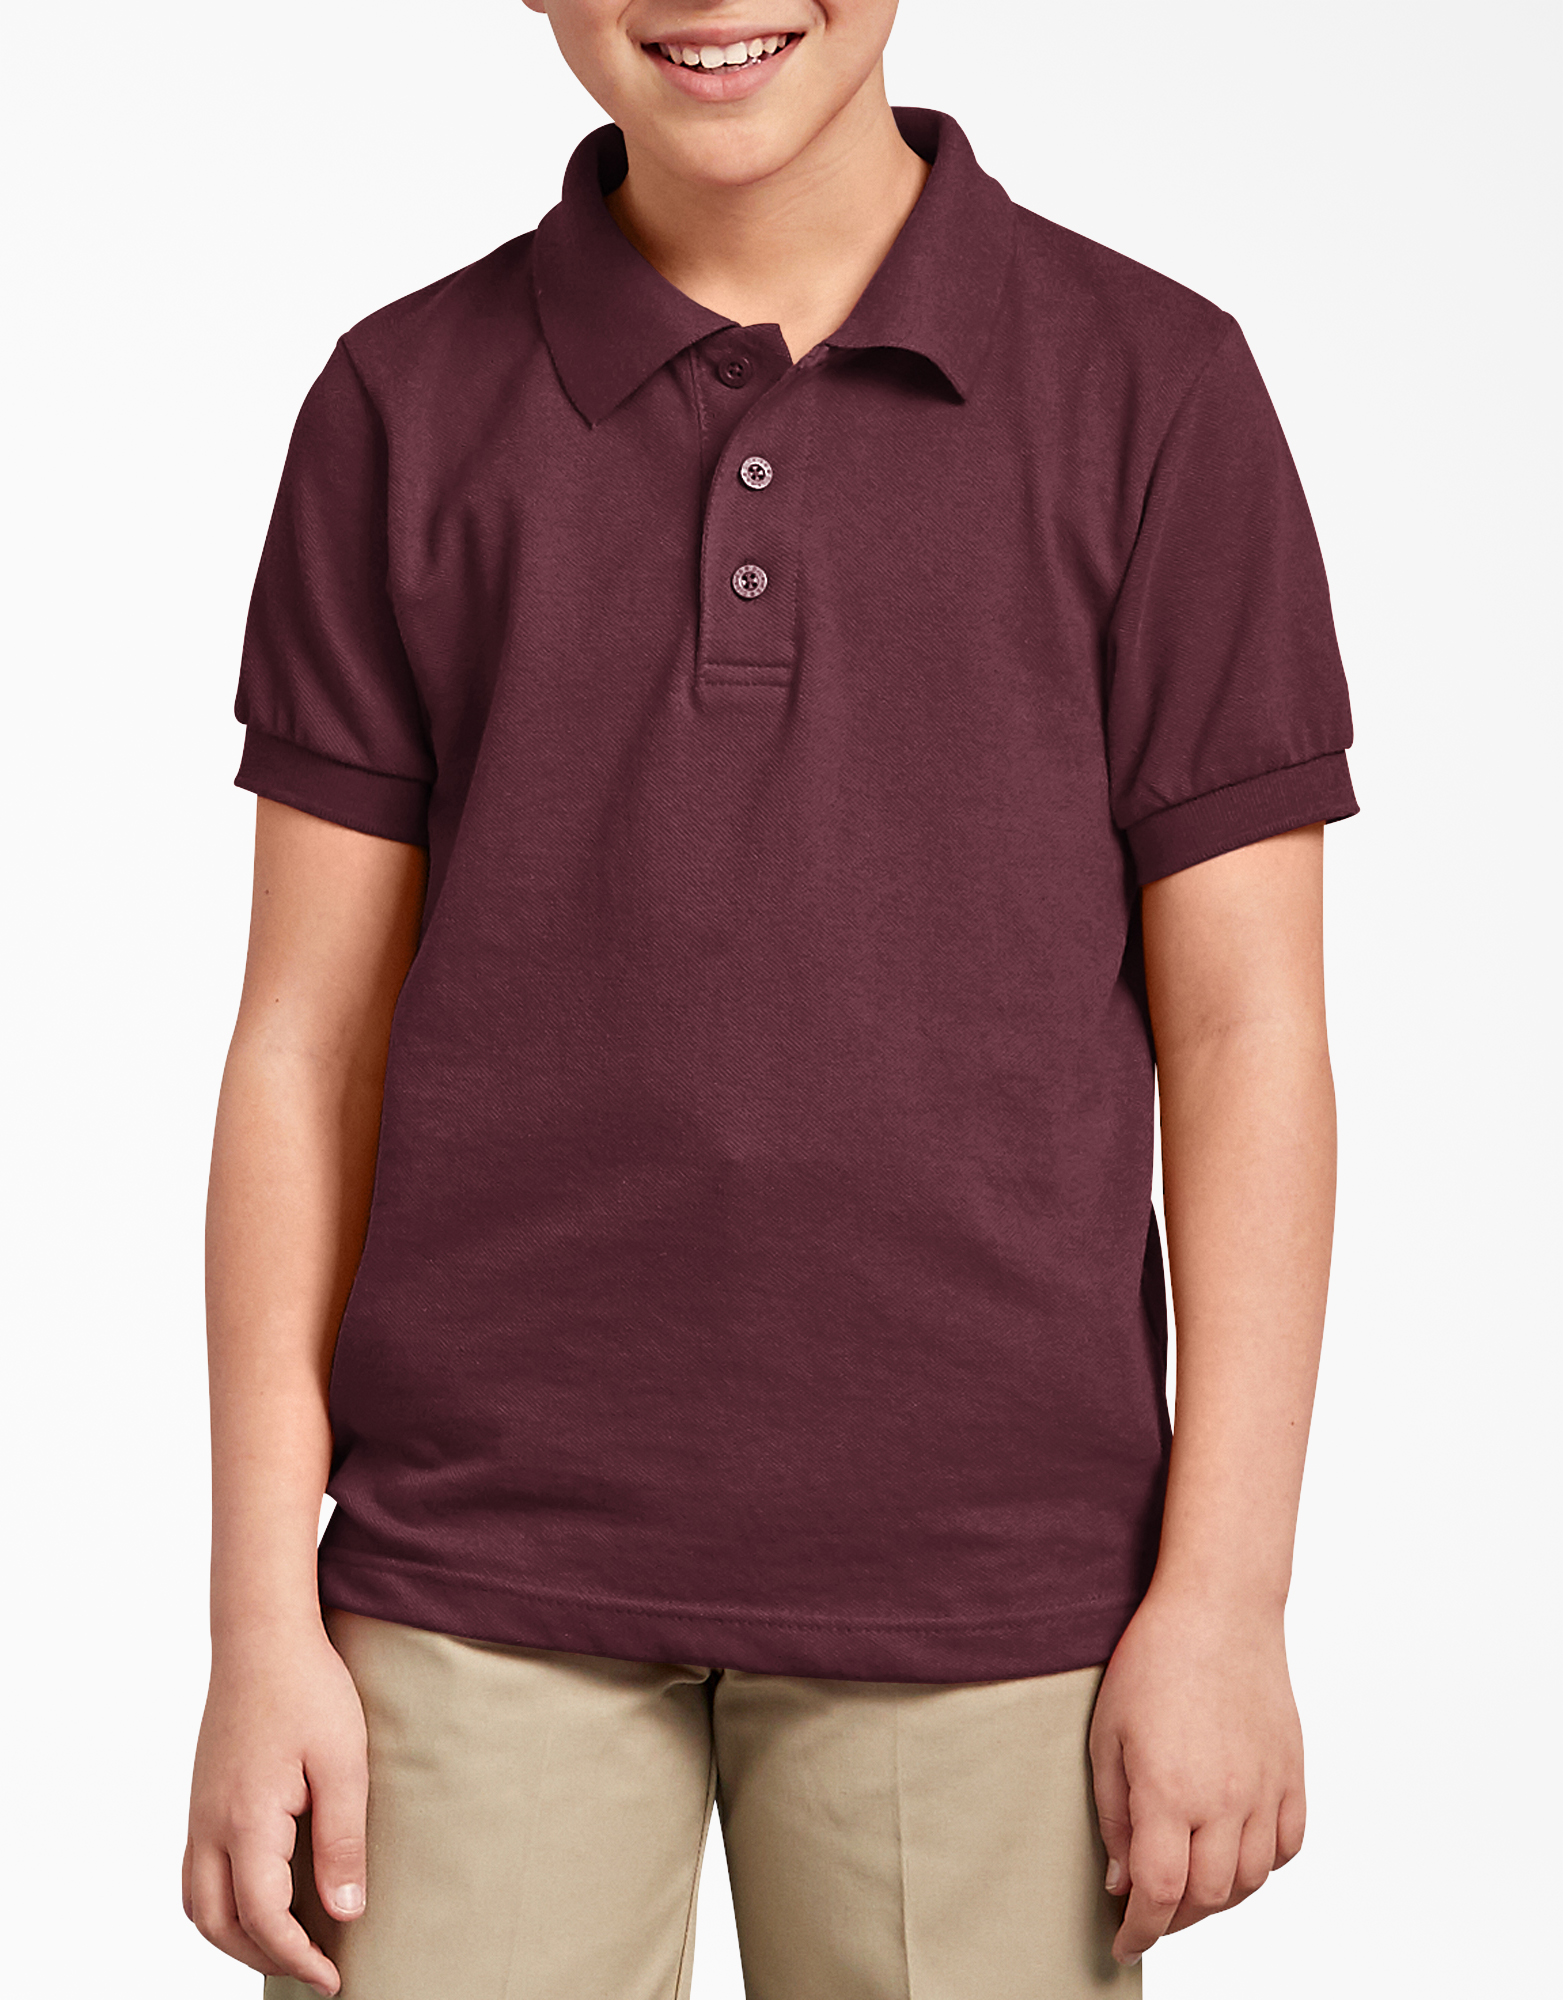 Kids' Short Sleeve Pique Polo Shirt, 4-20 - Burgundy (BY)